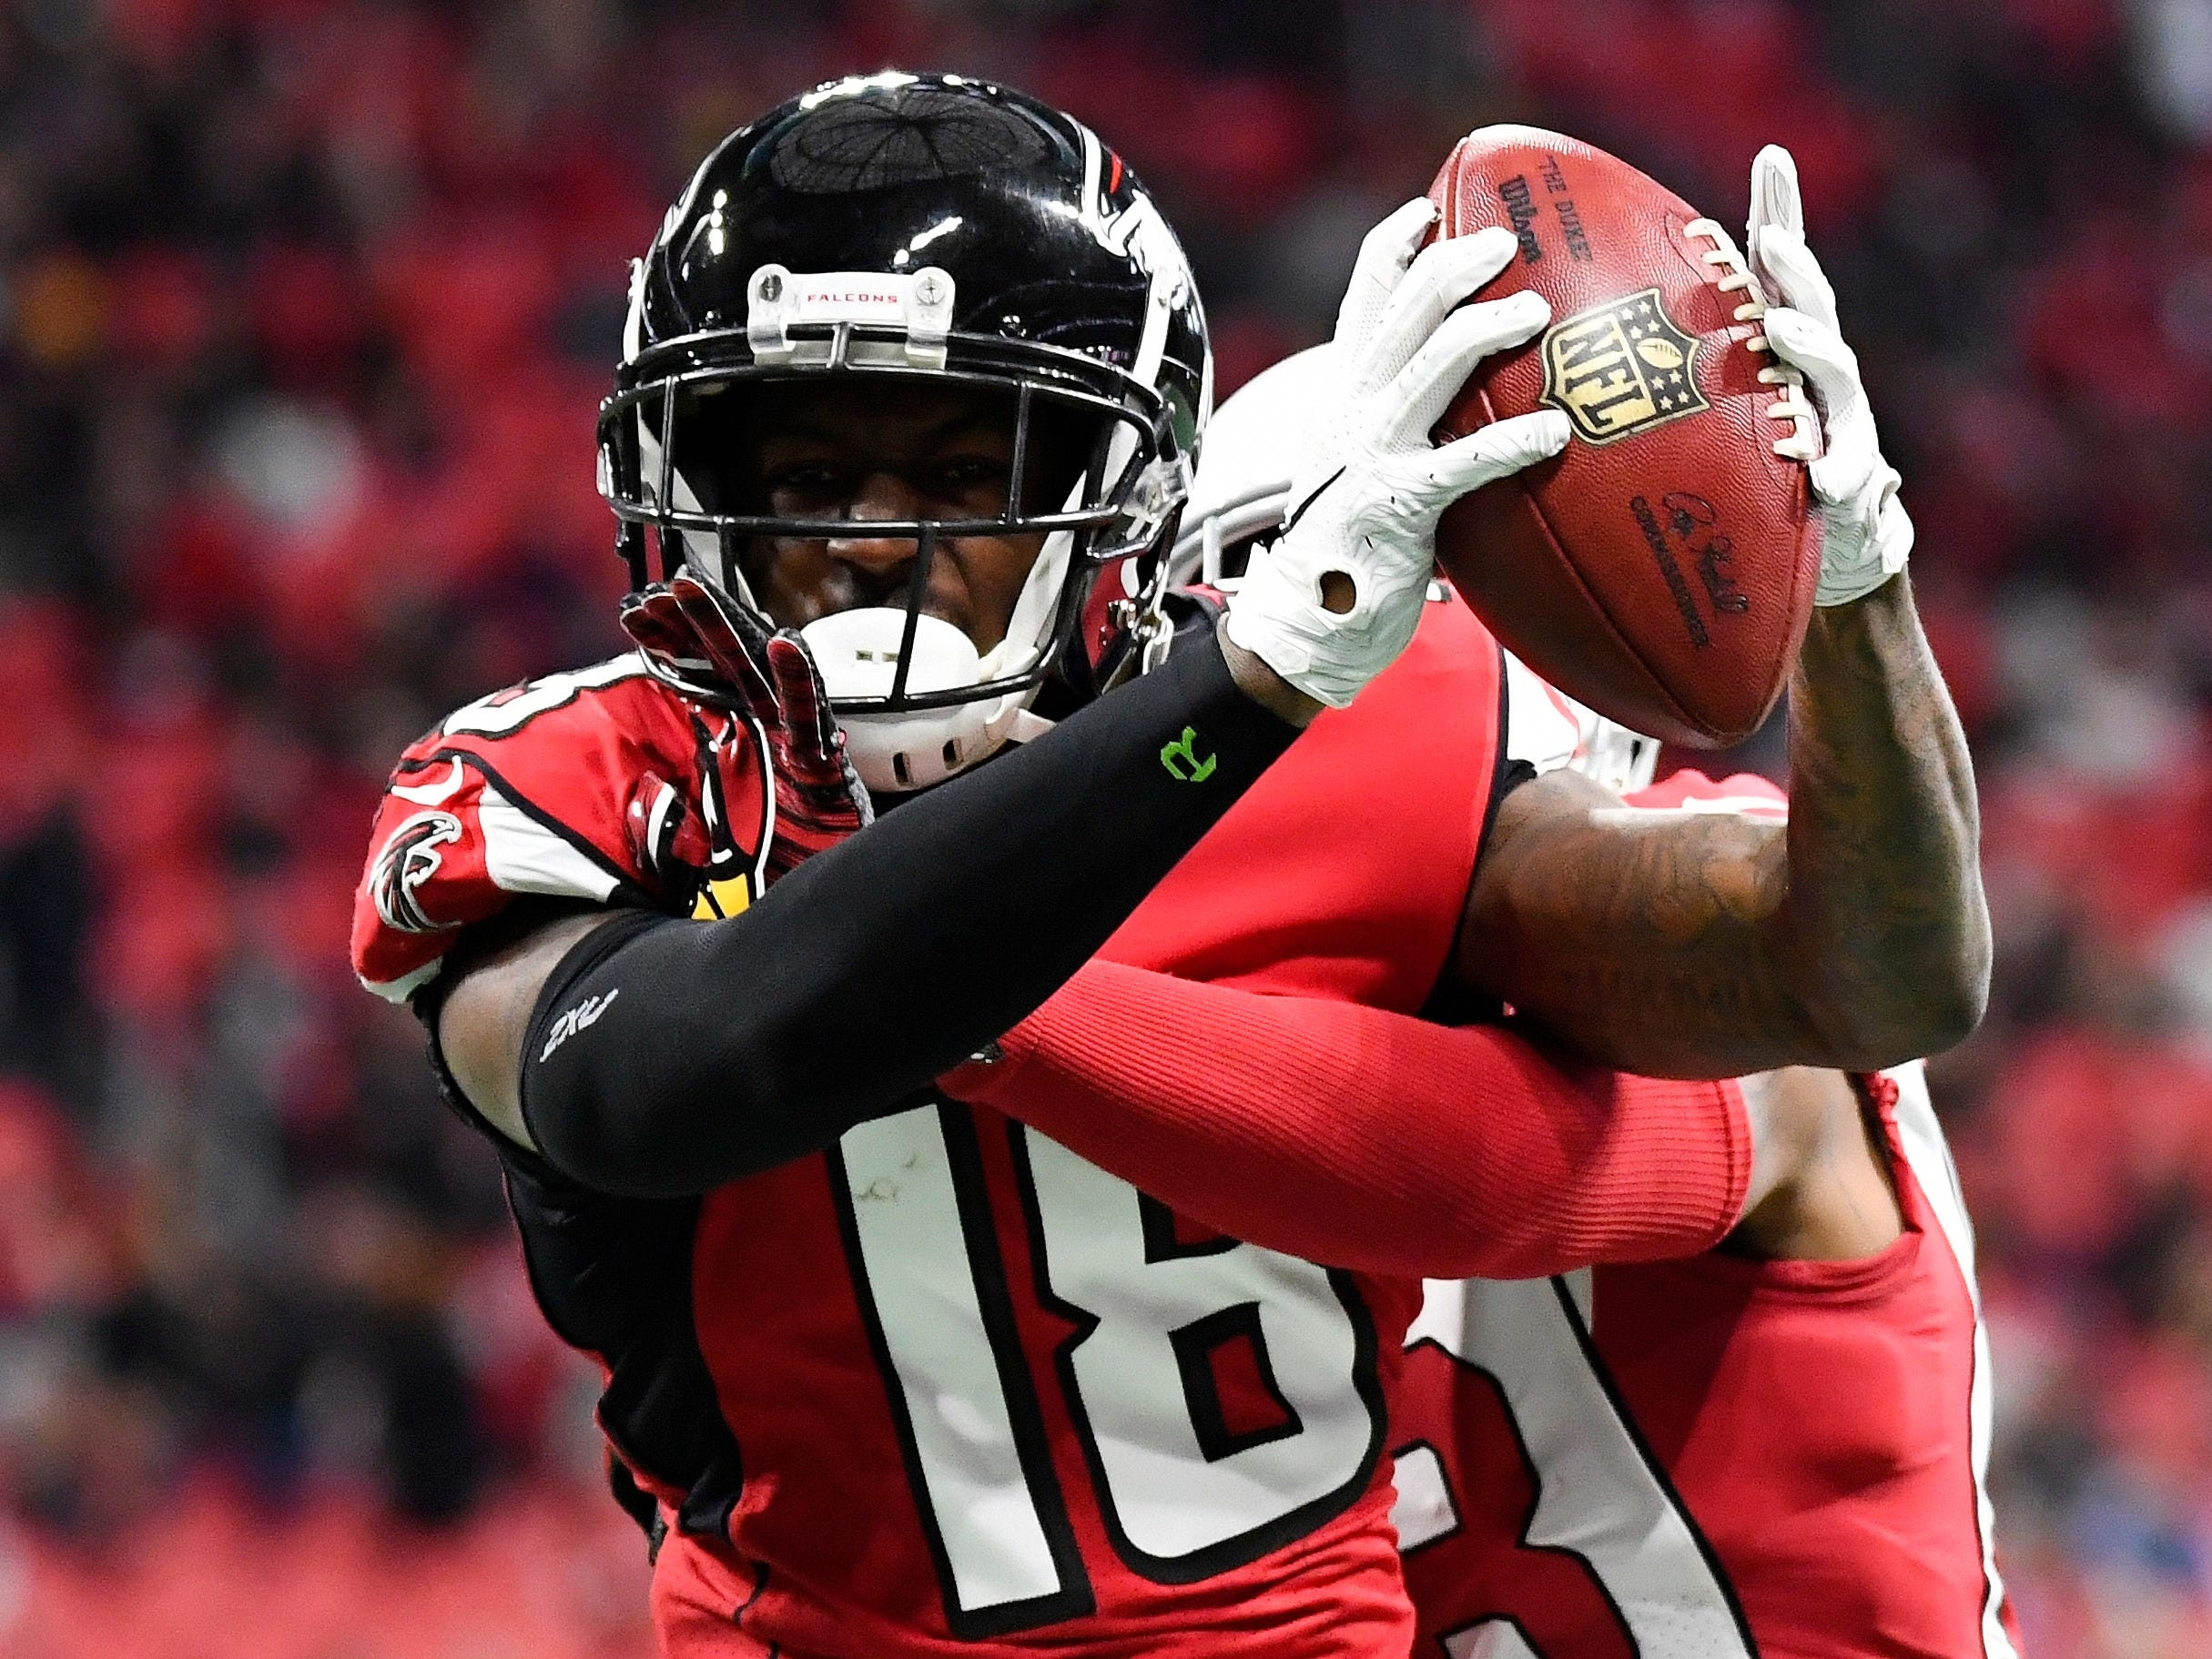 Atlanta Falcons wide receiver Calvin Ridley (18) makes a catch as Arizona Cardinals defensive back David Amerson (38) defends in the first half of an NFL football game against the Arizona Cardinals, Sunday, Dec. 16, 2018, in Atlanta.